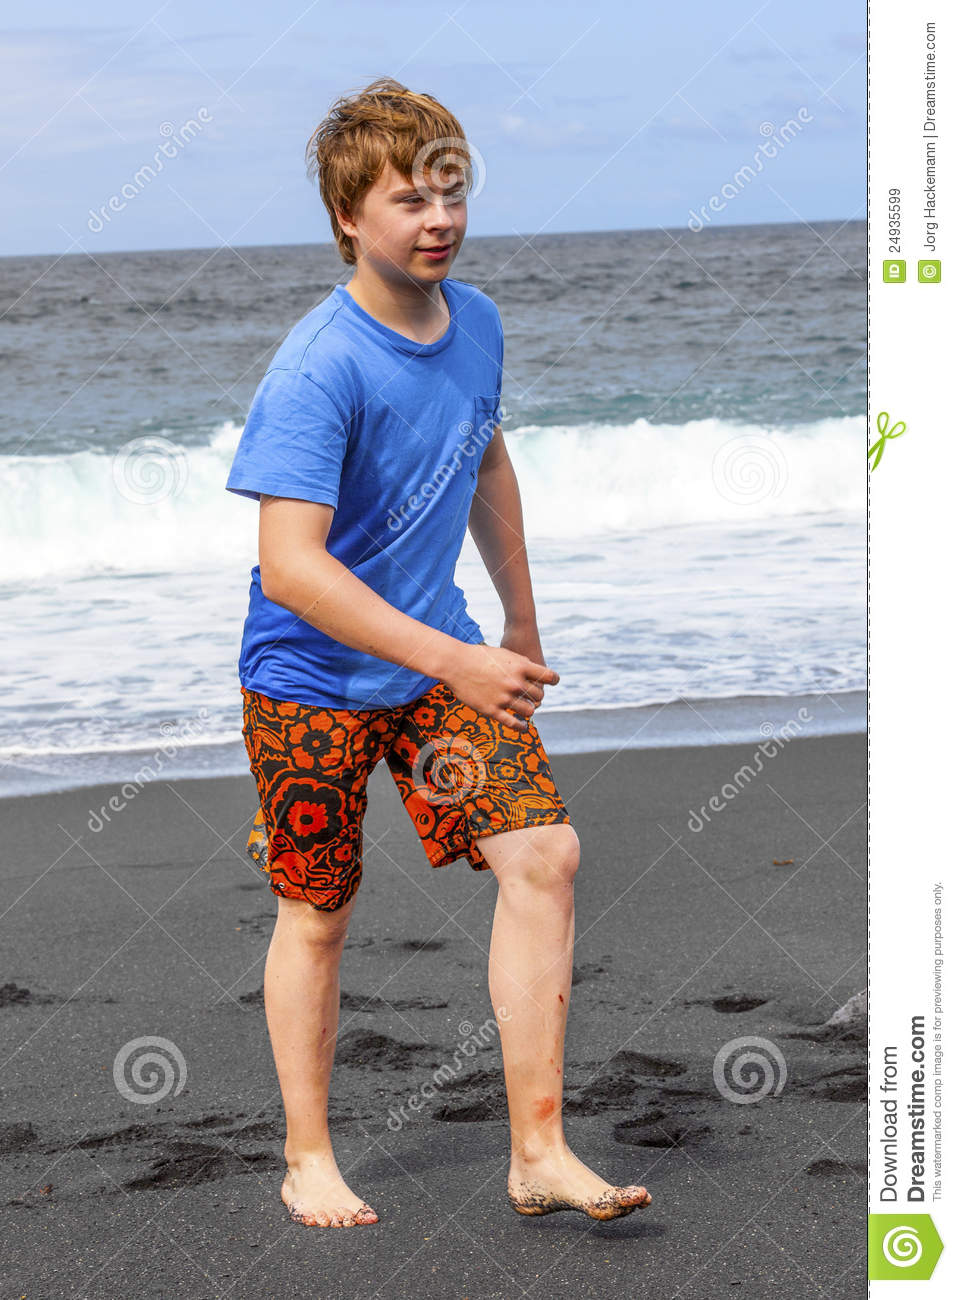 naked teen male at beach